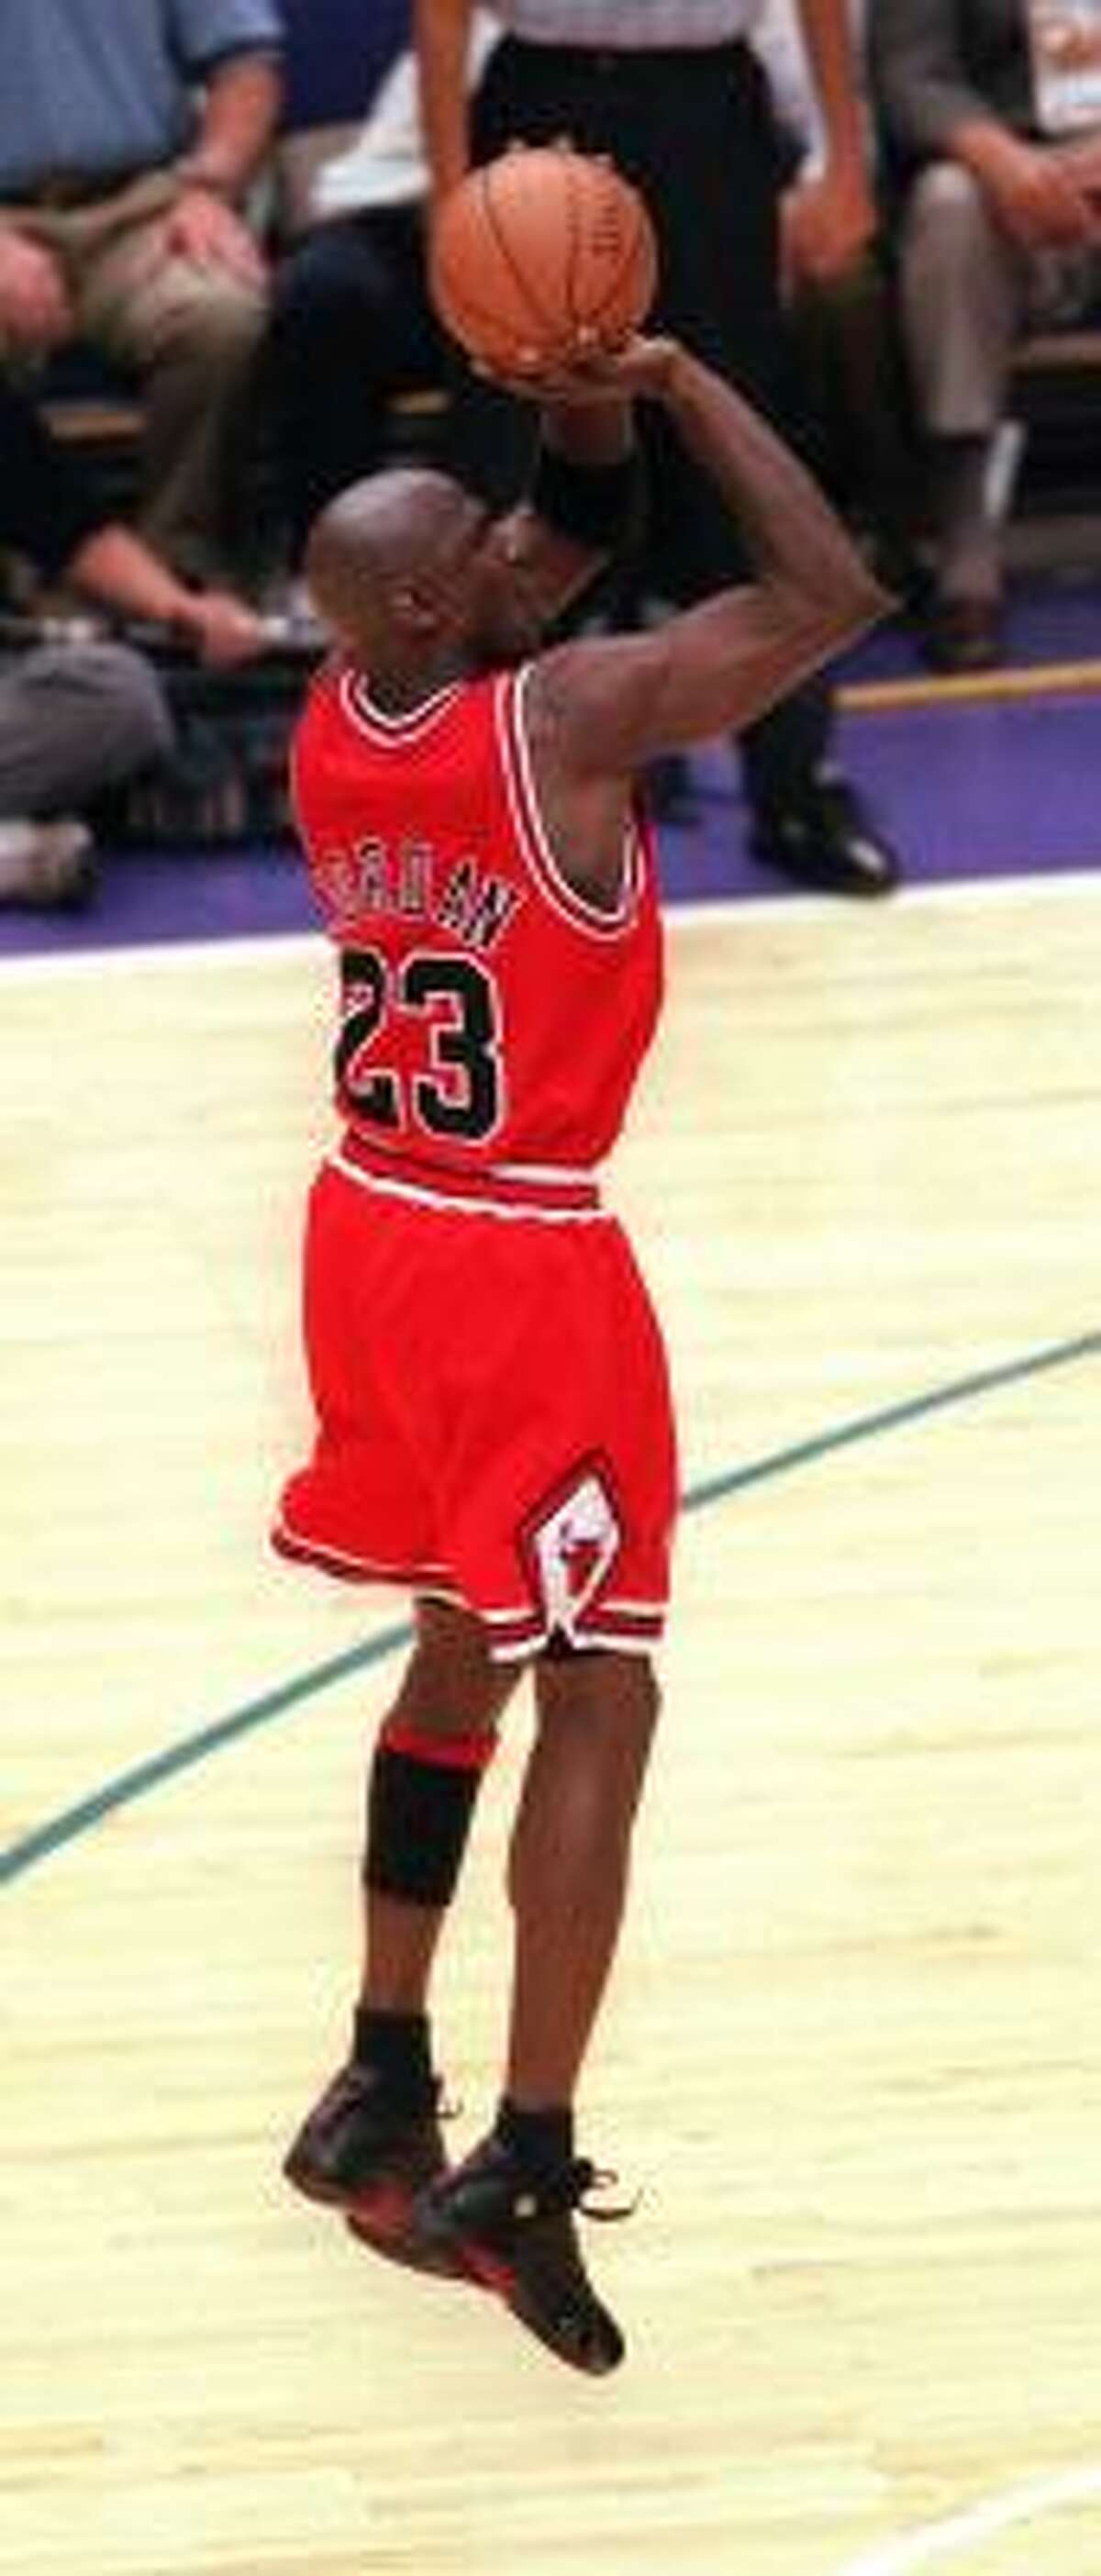 Michael Jordan, wearing the shoes that bear his name, fires in the winning shot in the 1998 NBA Finals.